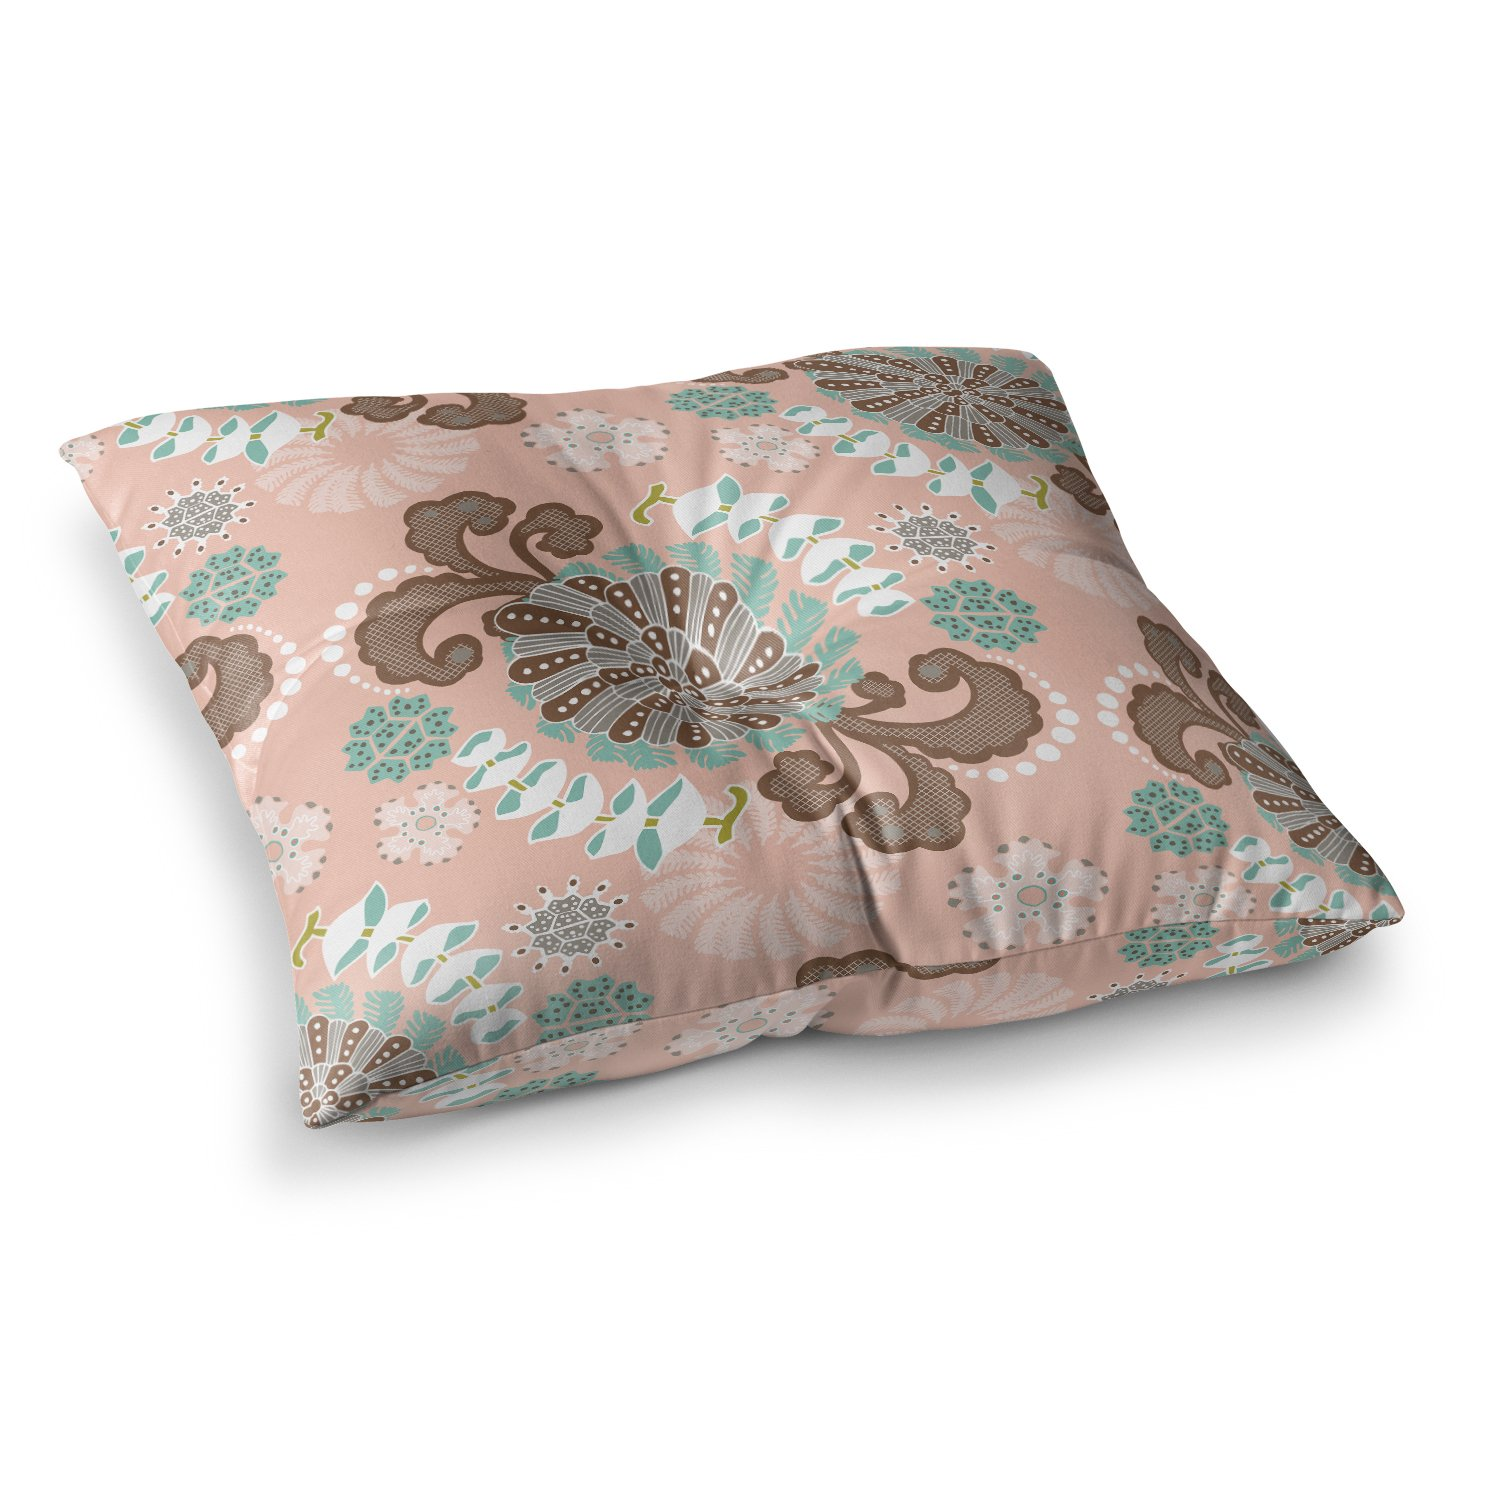 26 x 26 Square Floor Pillow Kess InHouse Sarie Sea Carnival Pink Teal